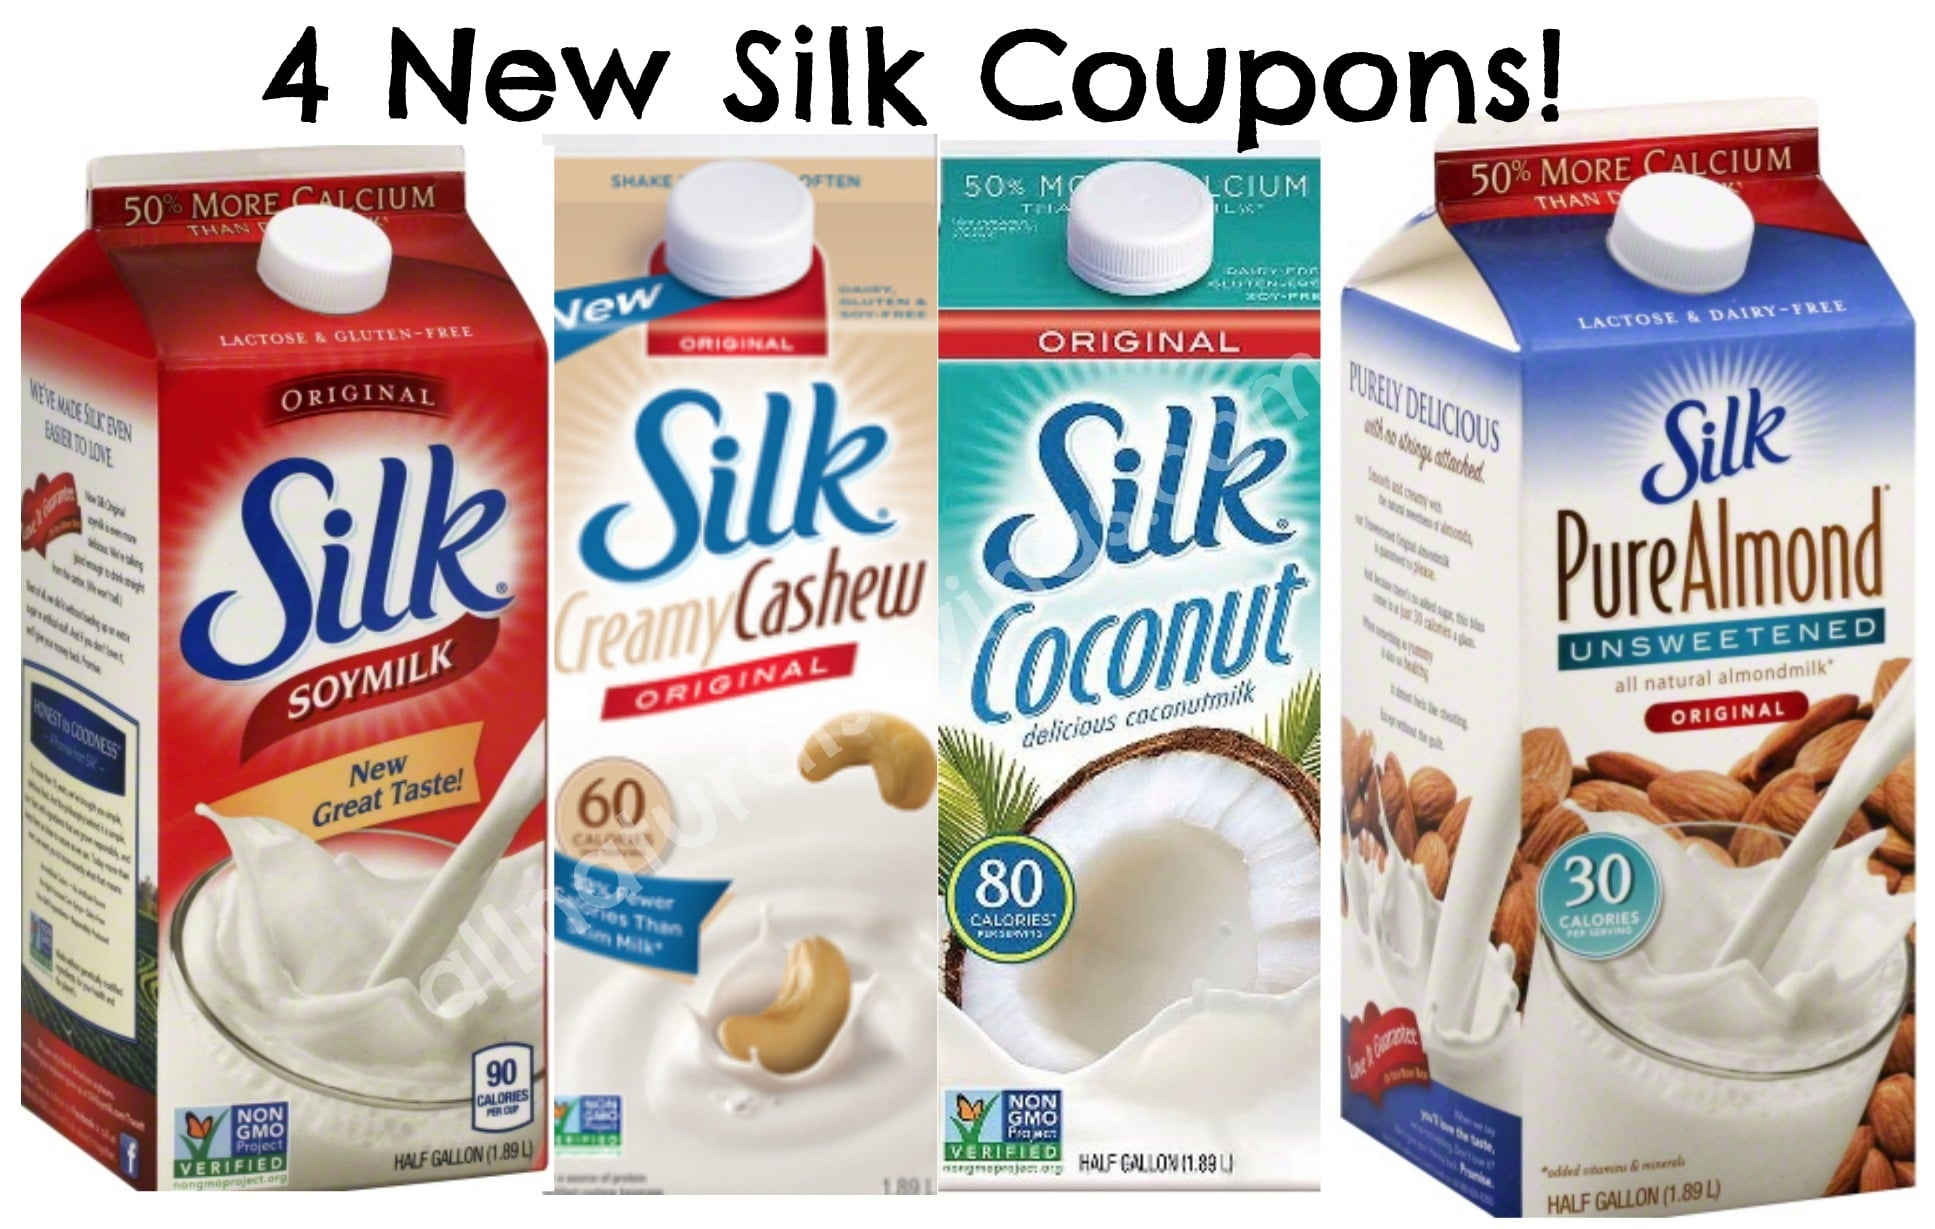 Four New Silk Dairy Free Milk Printable Coupons - All Natural Savings - Free Printable Silk Soy Milk Coupons